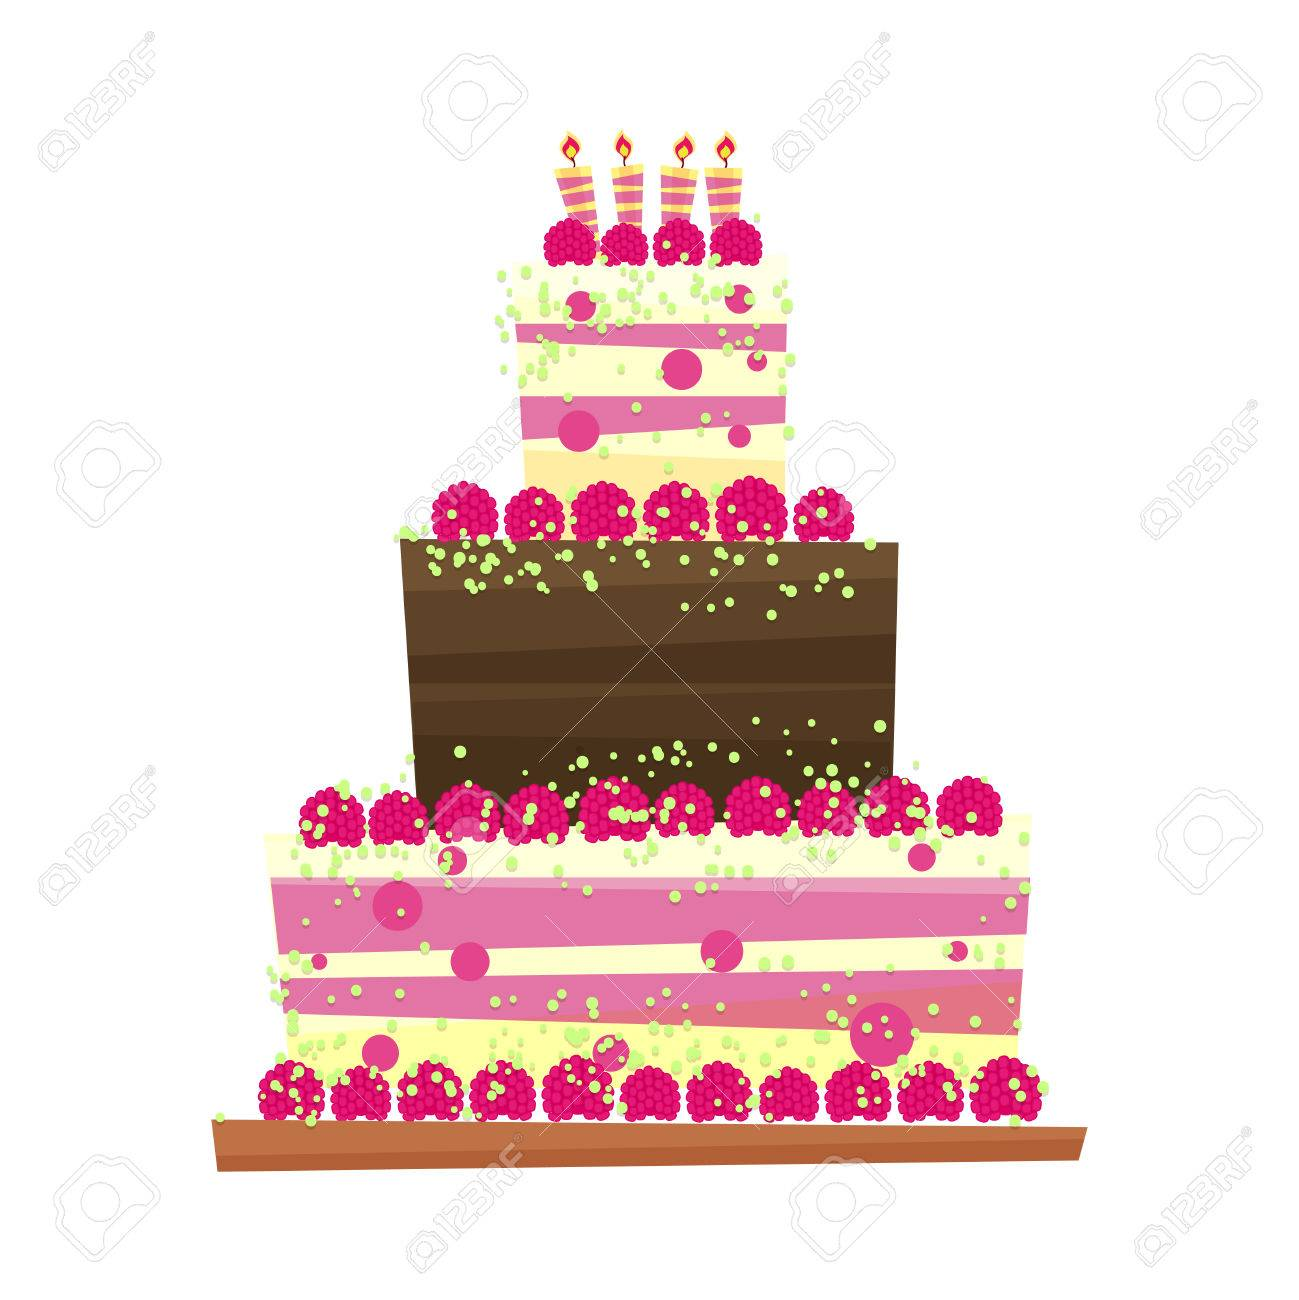 Birthday or wedding cakertoon style sweet isolated on white birthday or wedding cakertoon style sweet isolated on white background international day of biocorpaavc Image collections